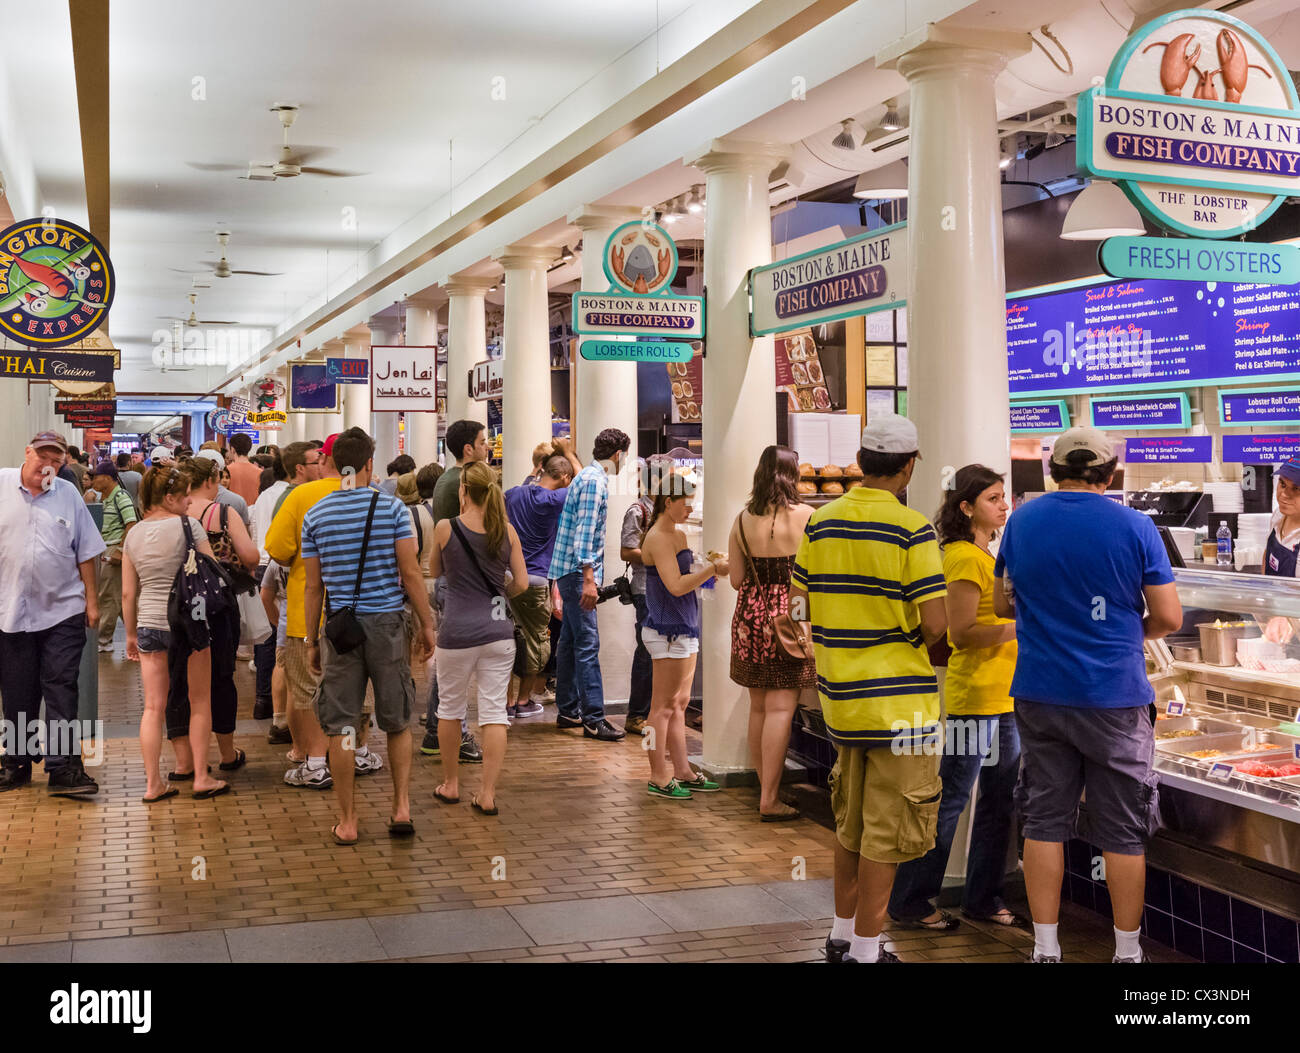 Food stalls in Quincy Market in historic downtown Boston, Massachusetts, USA - Stock Image